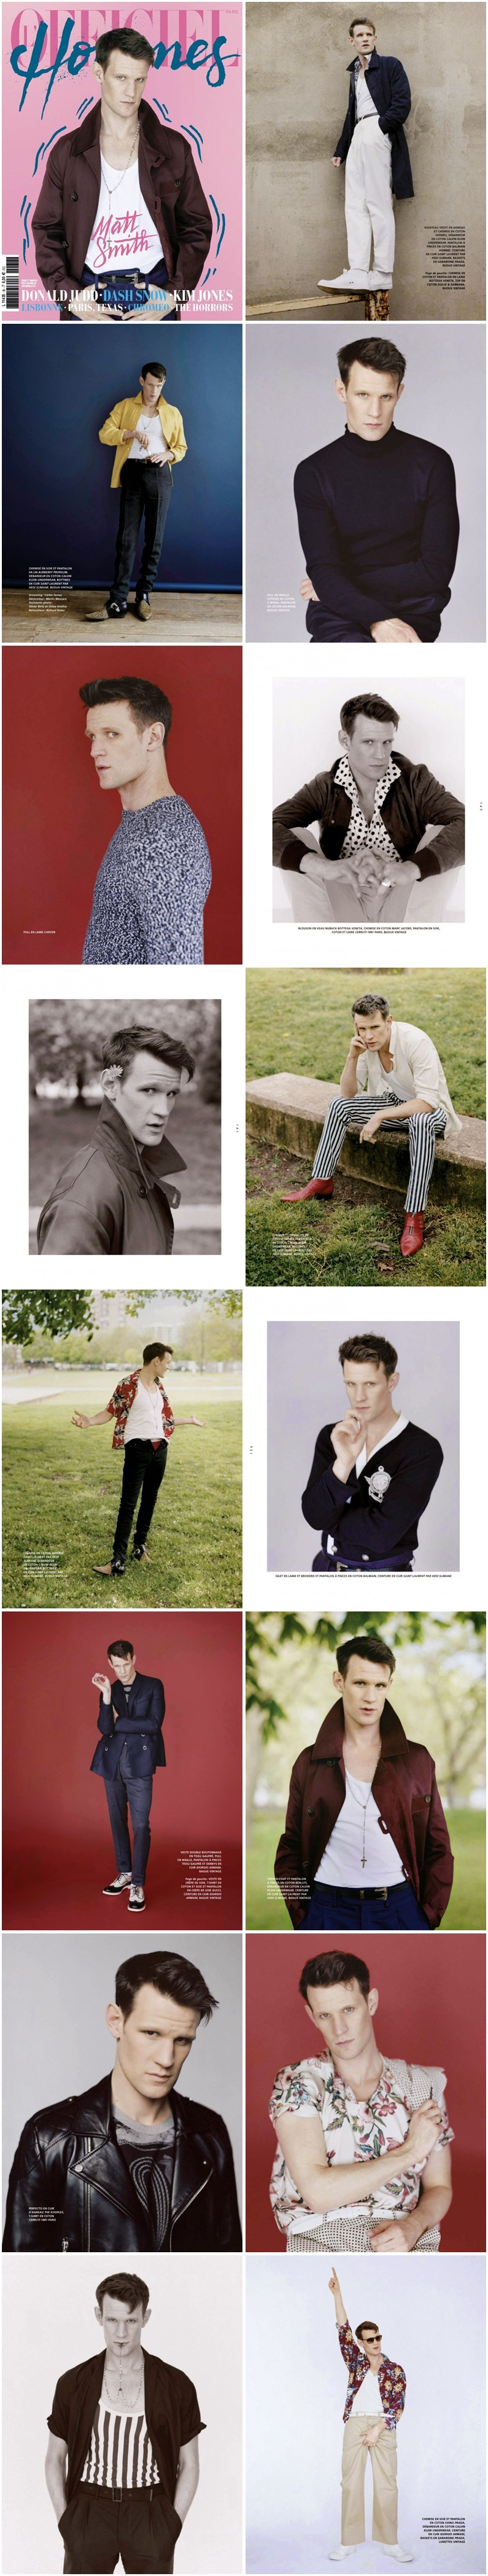 Matt-Smith-LOfficiel-Hommes-fashion4addicts